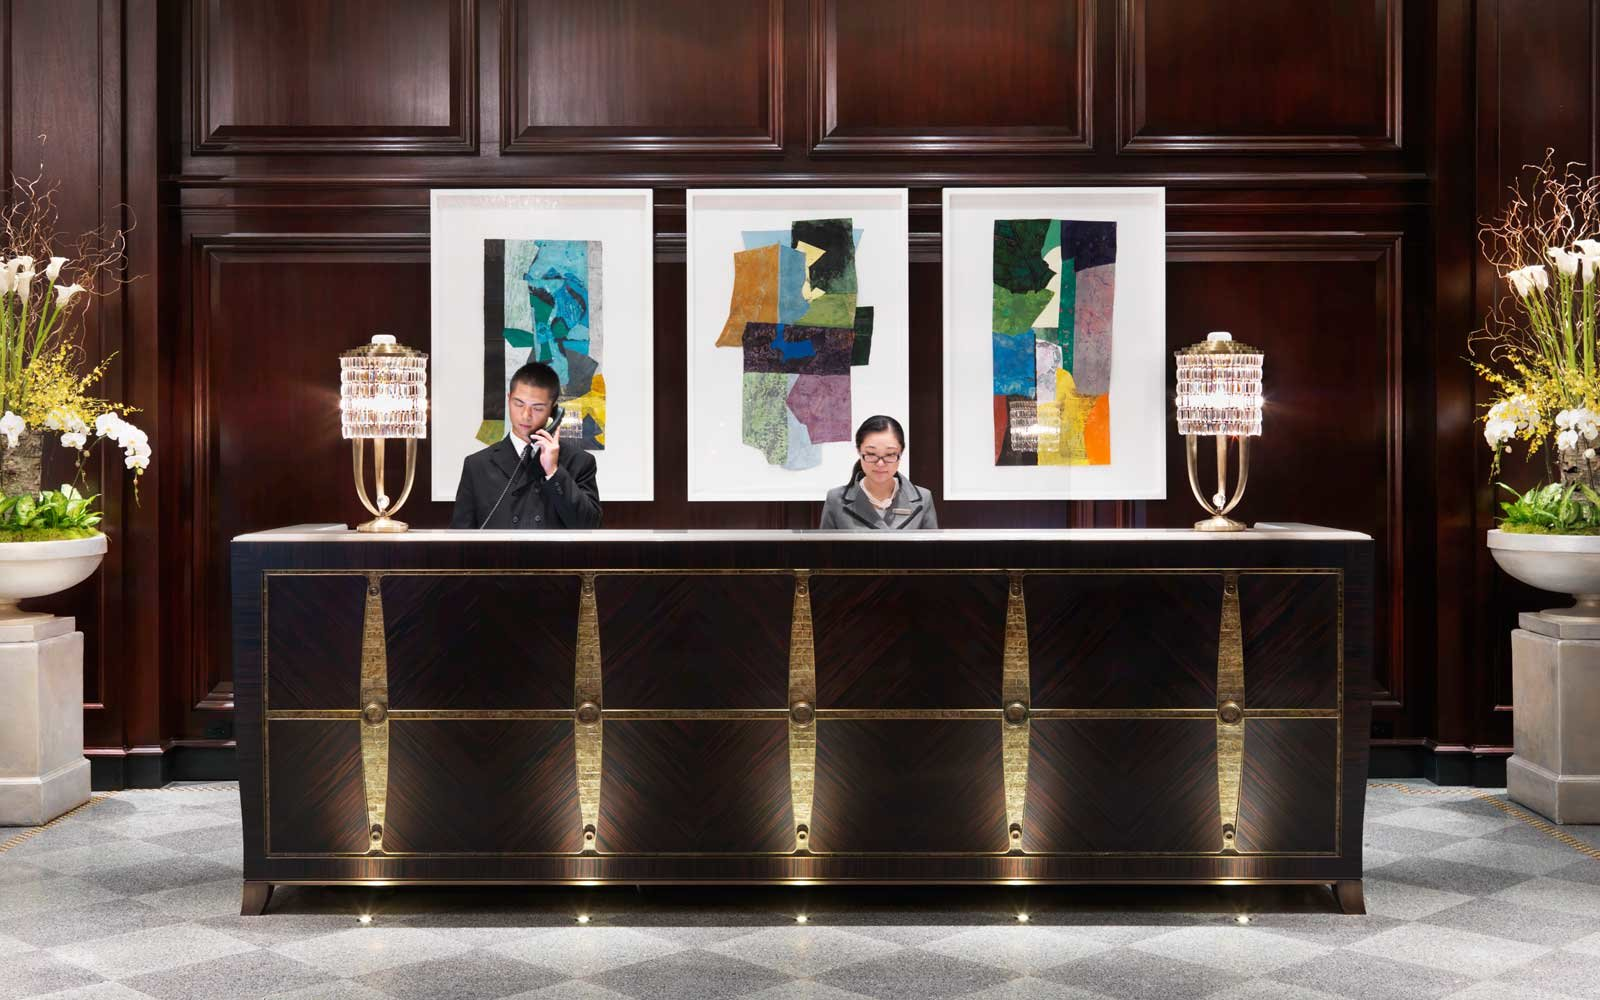 Front desk at the Rosewood Hotel Georgia